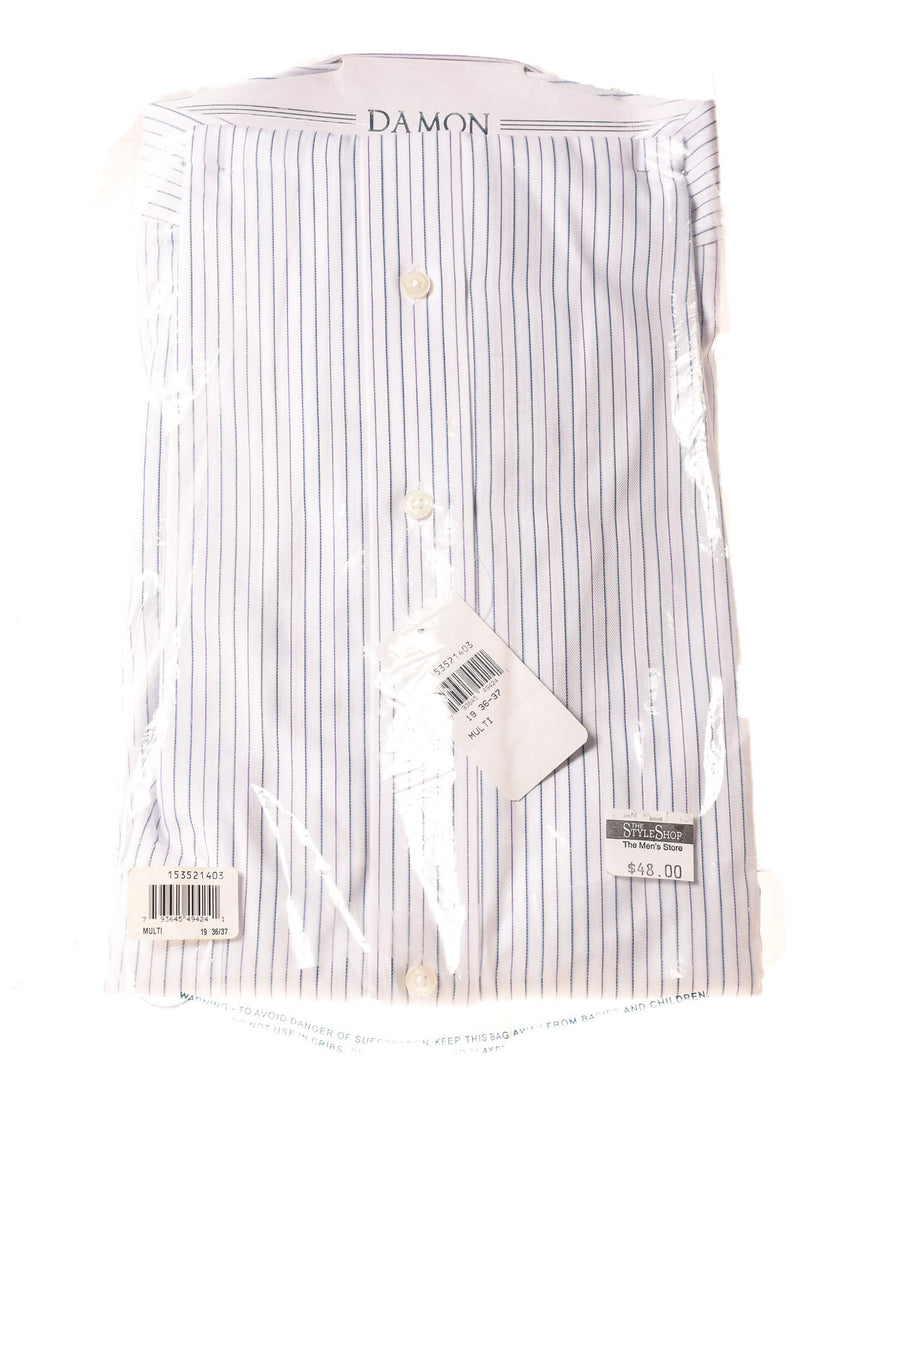 NEW Damon Men's Shirt 19 Blue & White